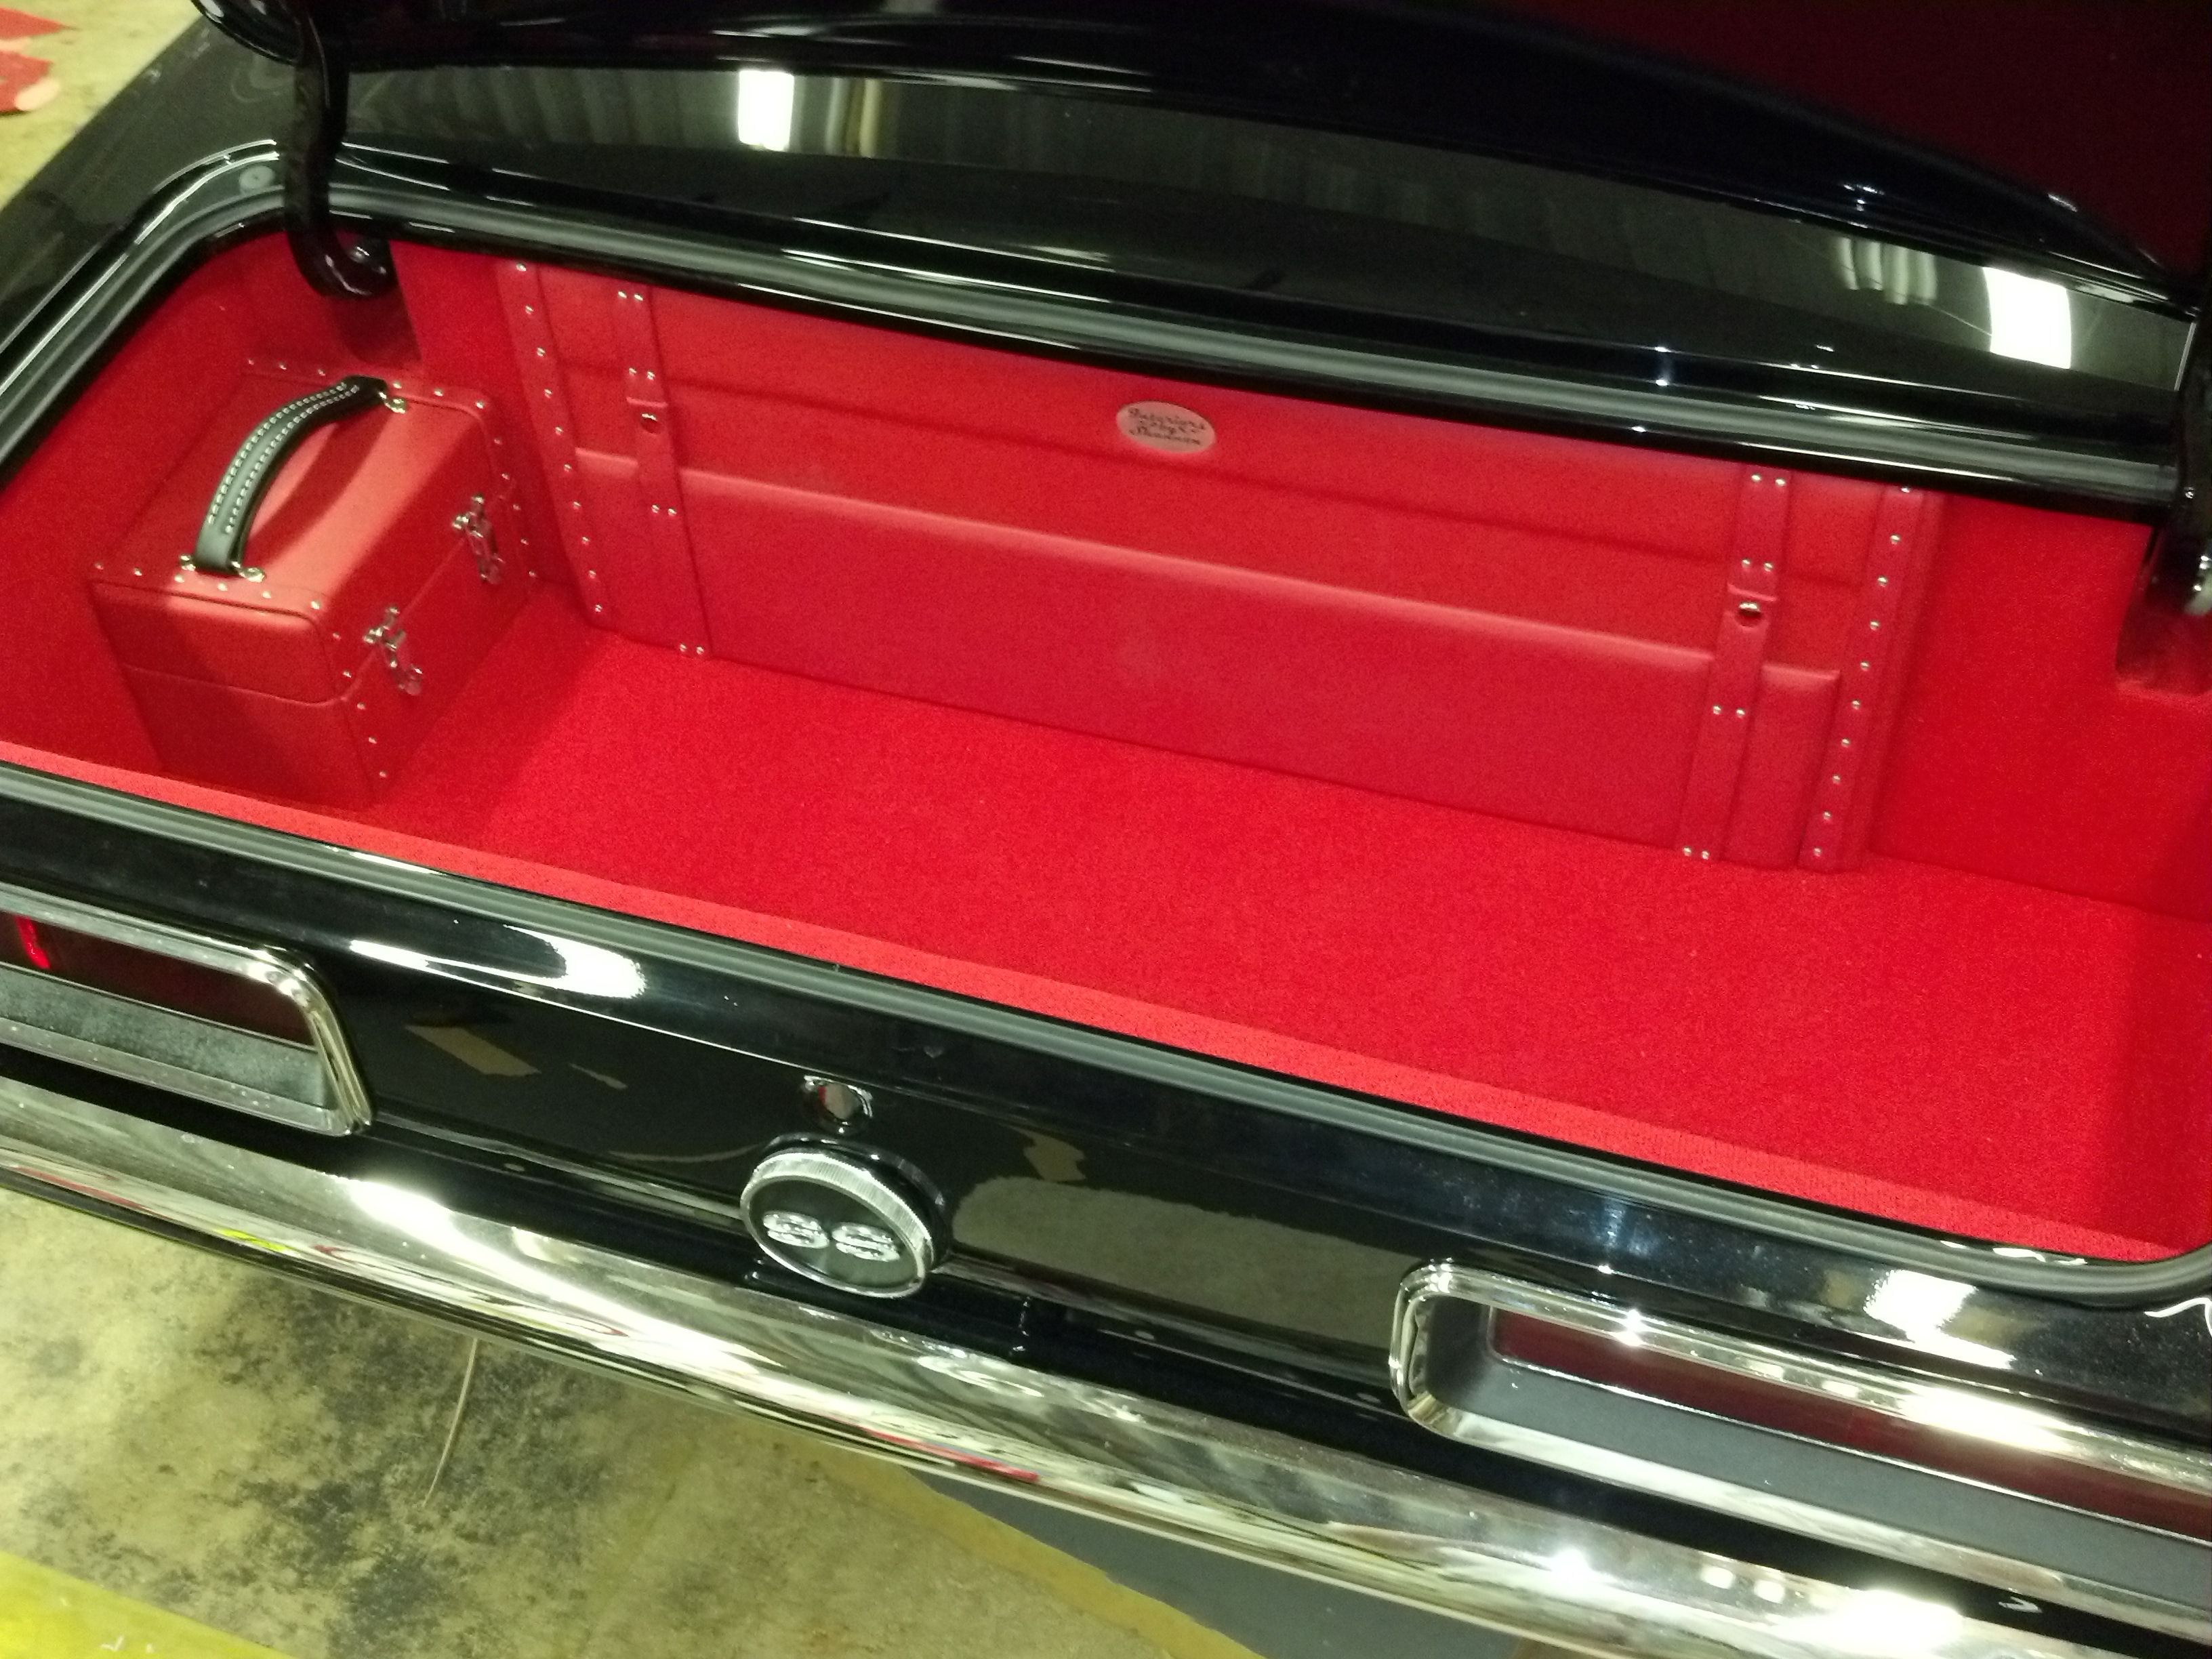 black 67 camaro red interior interior by shannon custom seats console door panels trunk. Black Bedroom Furniture Sets. Home Design Ideas